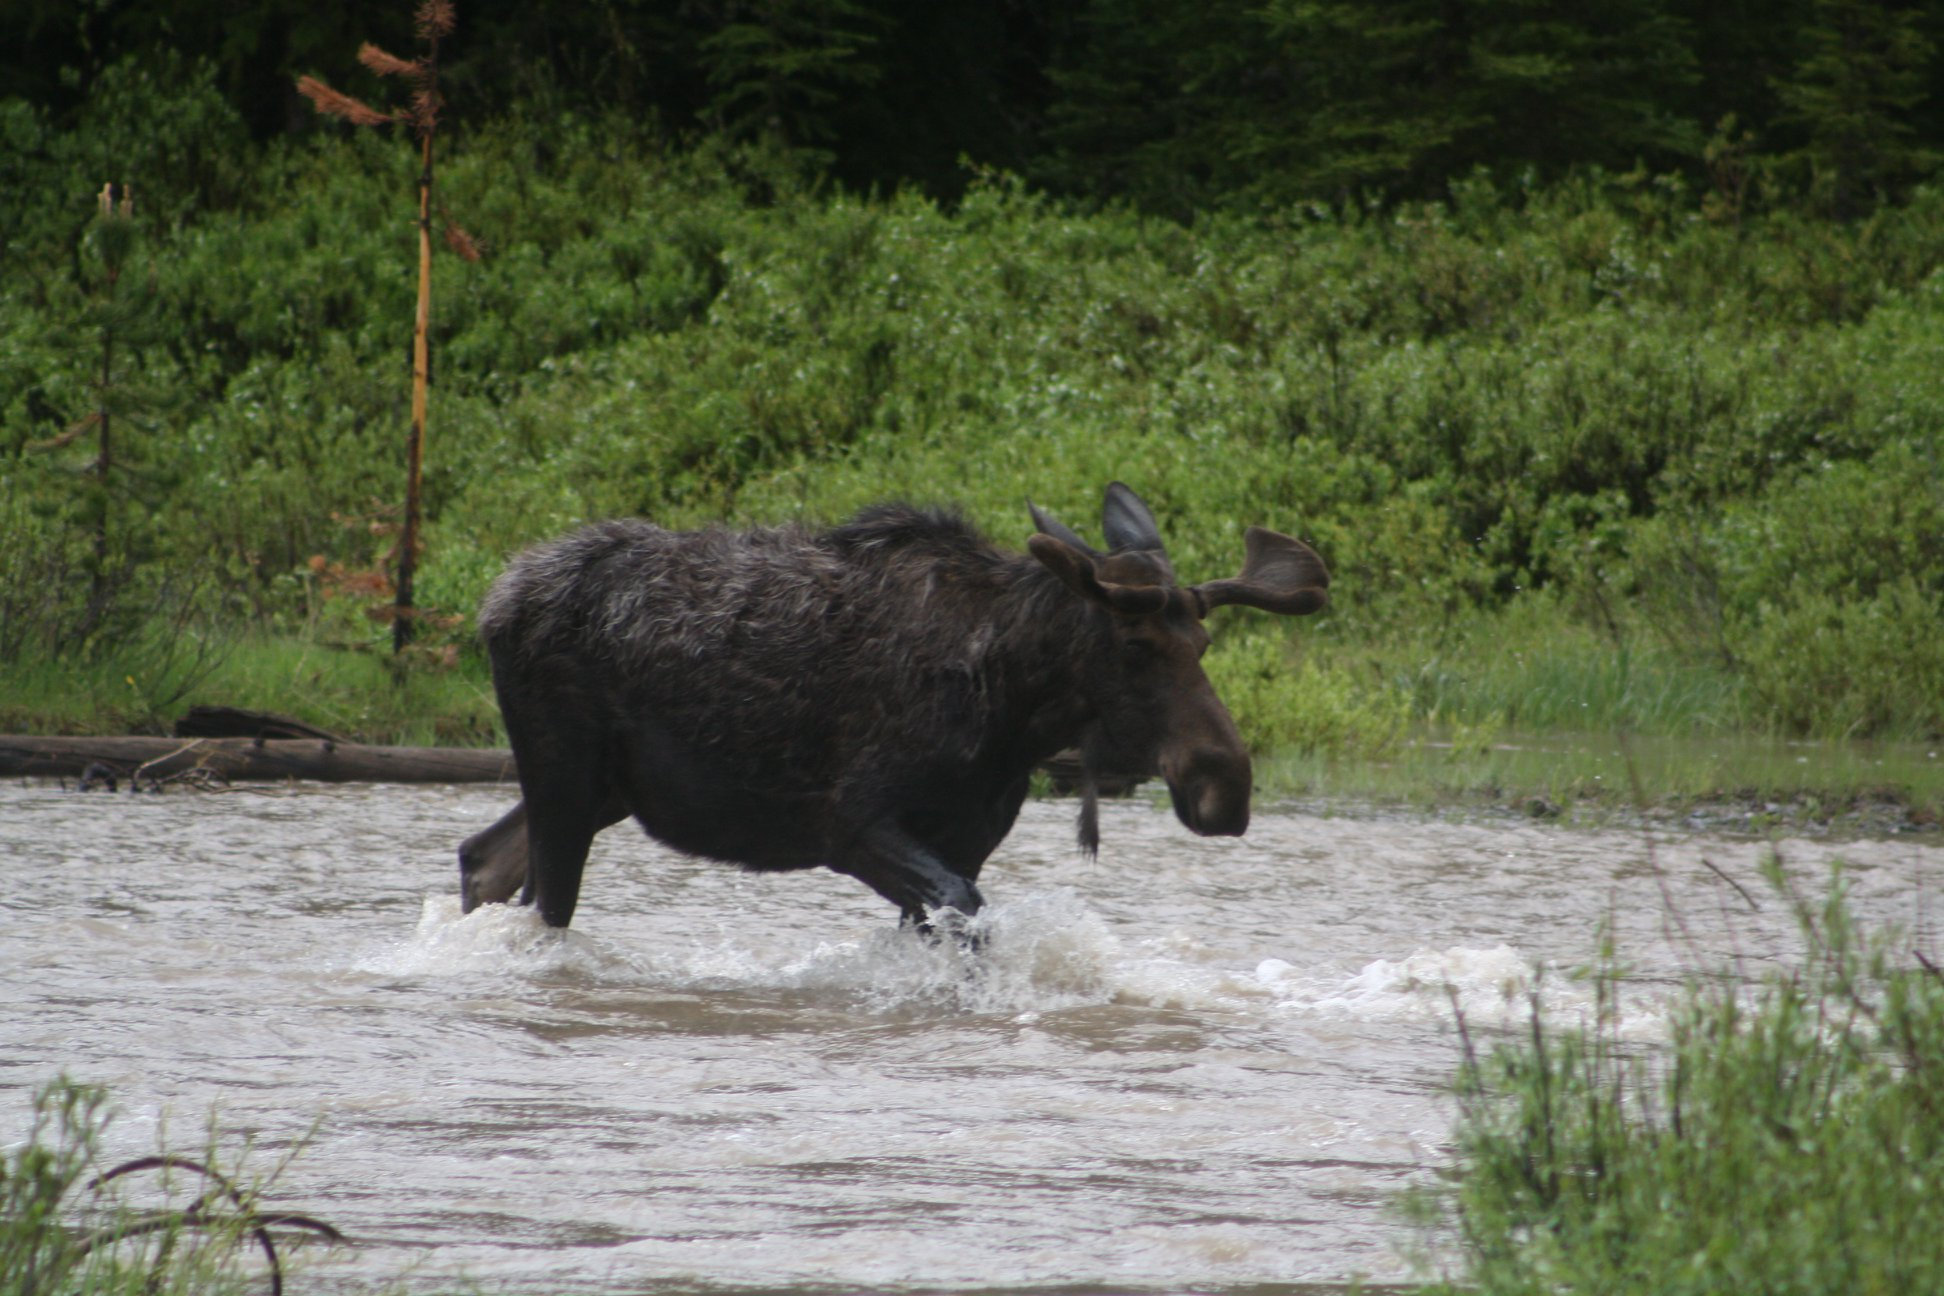 This is a moose at yellowstone. - I took this picture last year. Yellowstone might be my favorite place on Earth. Seems like pertinent information about me.